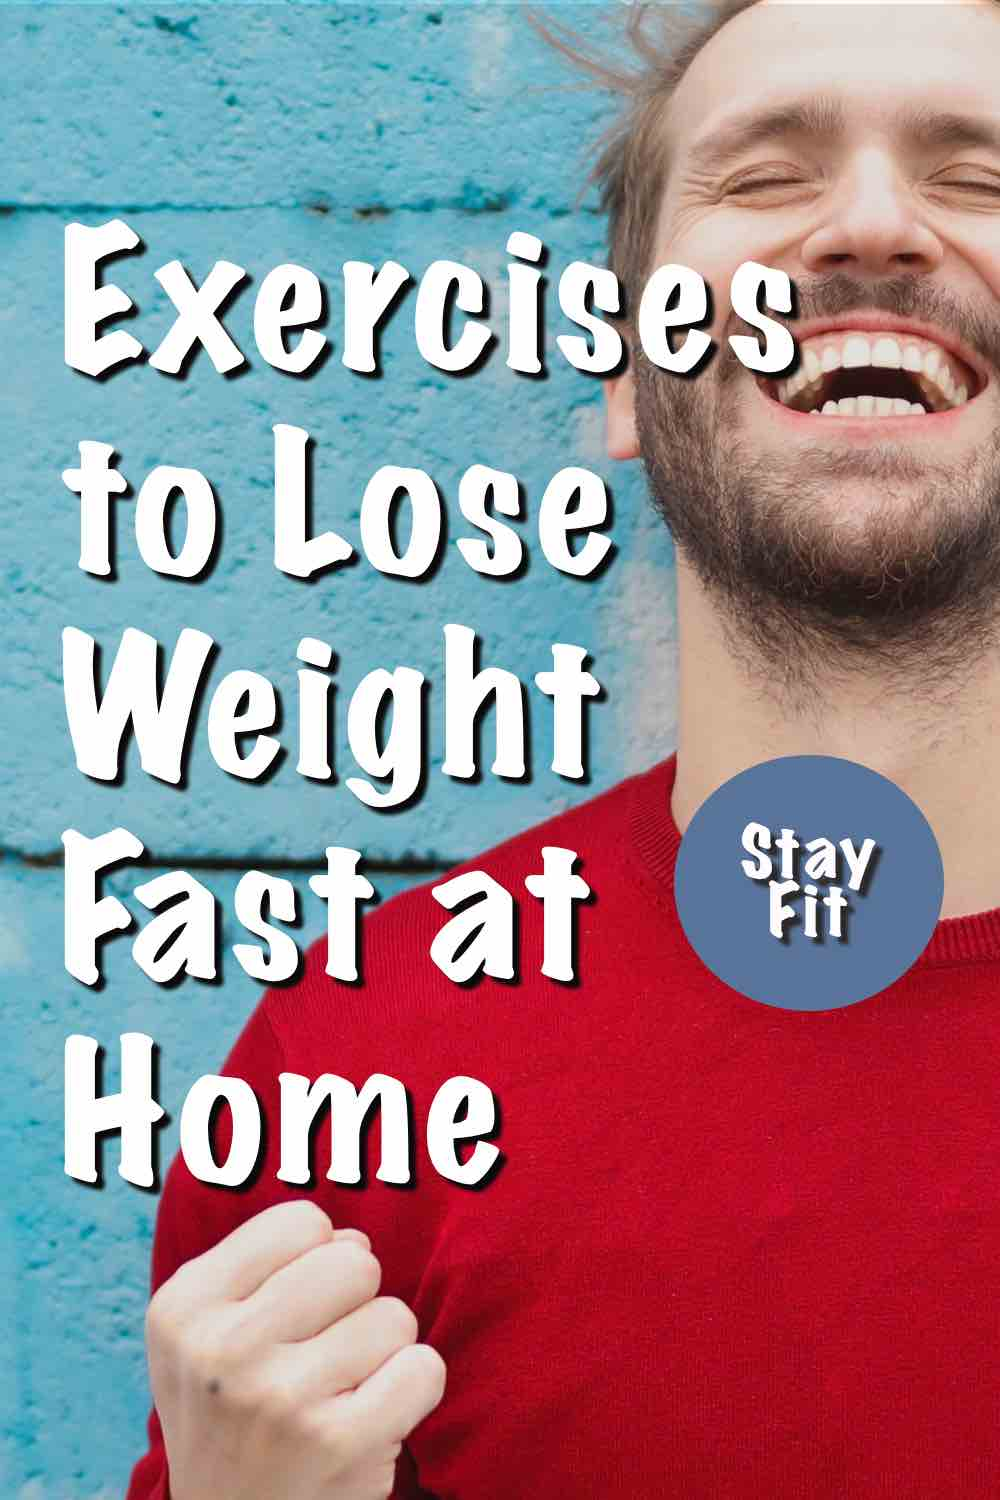 A man doing exercises to lose weight fast at home